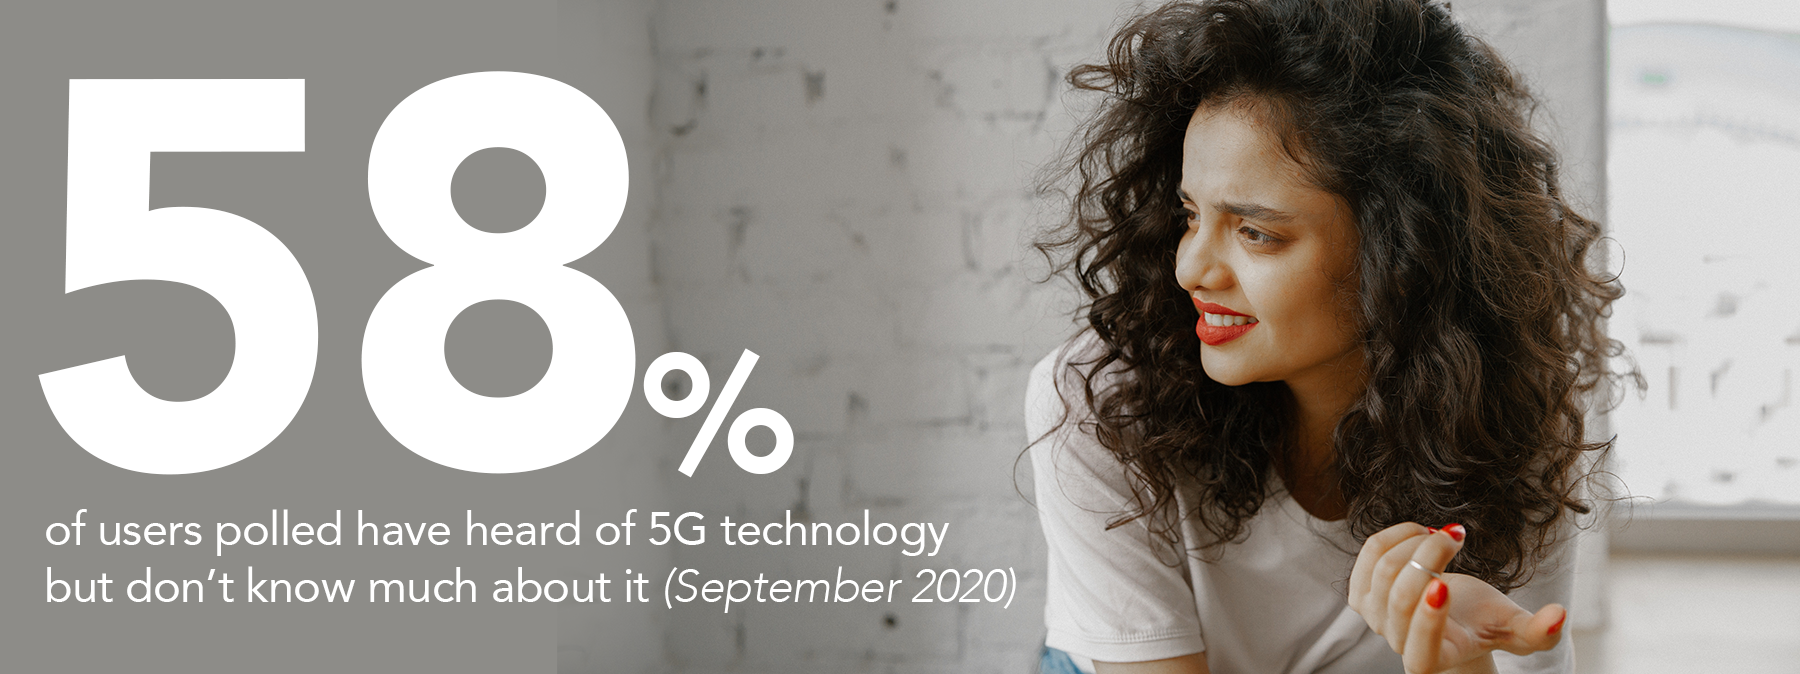 58% of users polled have heard of 5G technology but don't know much about it